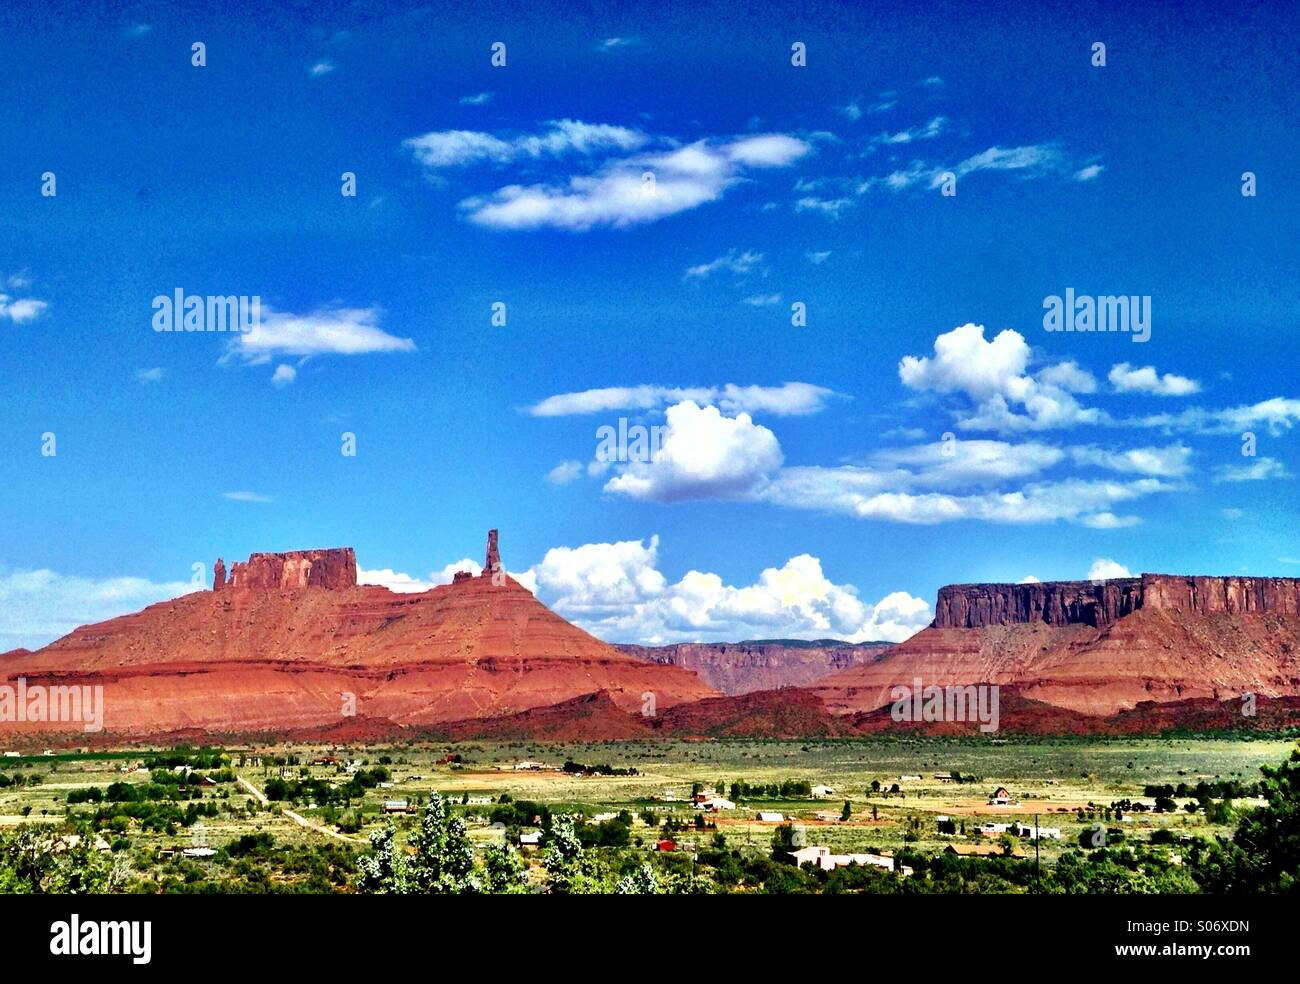 A huge blue sky sits over the spires and rock formations of Castle Valley, Utah on a fall day. - Stock Image